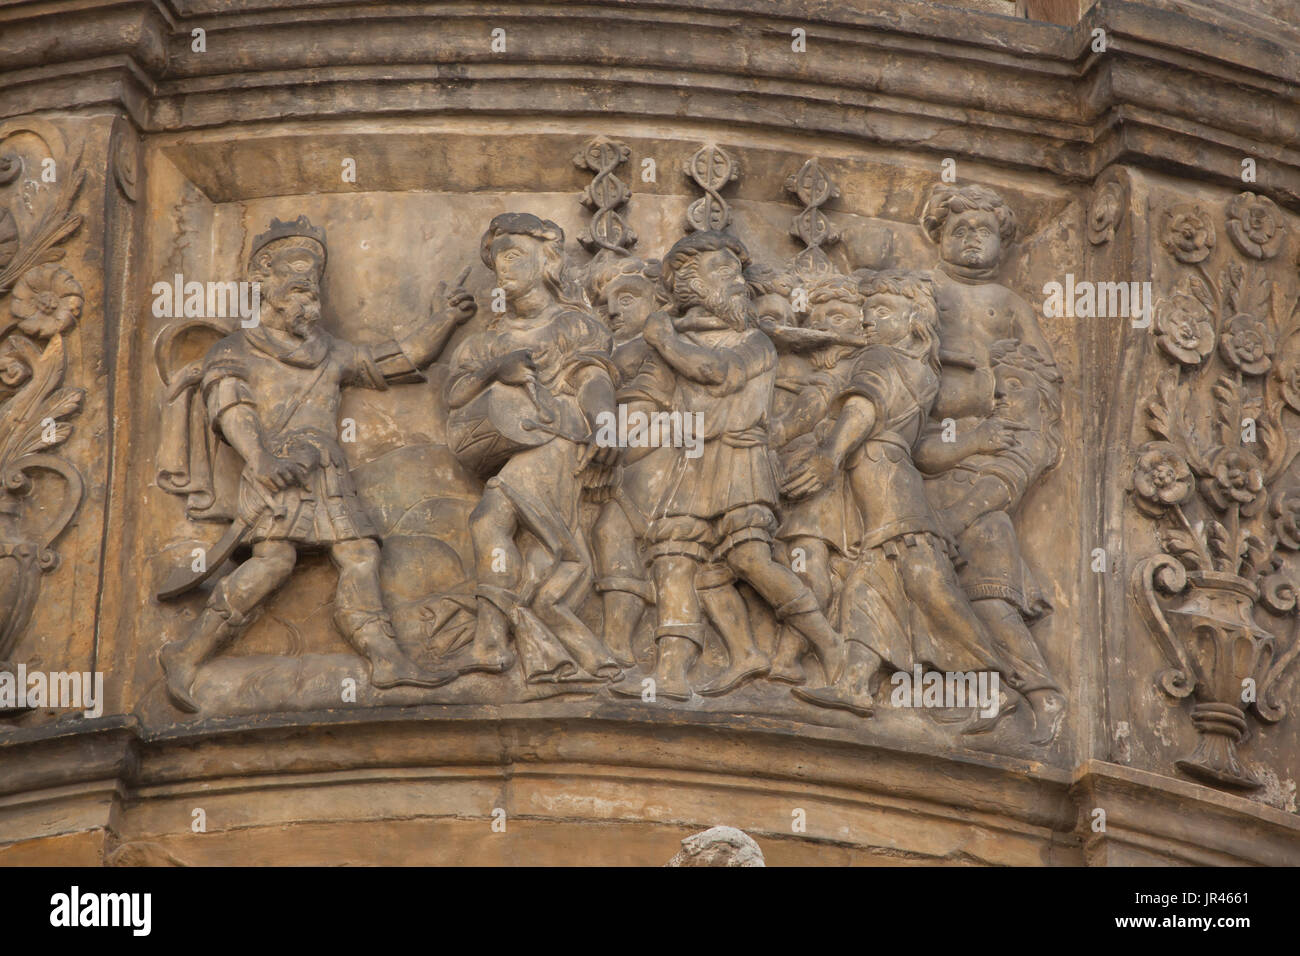 King Pentheus and Bacchus. Scene from the Metamorphoses by Roman poet Ovid depicted in the Renaissance relief on Stock Photo